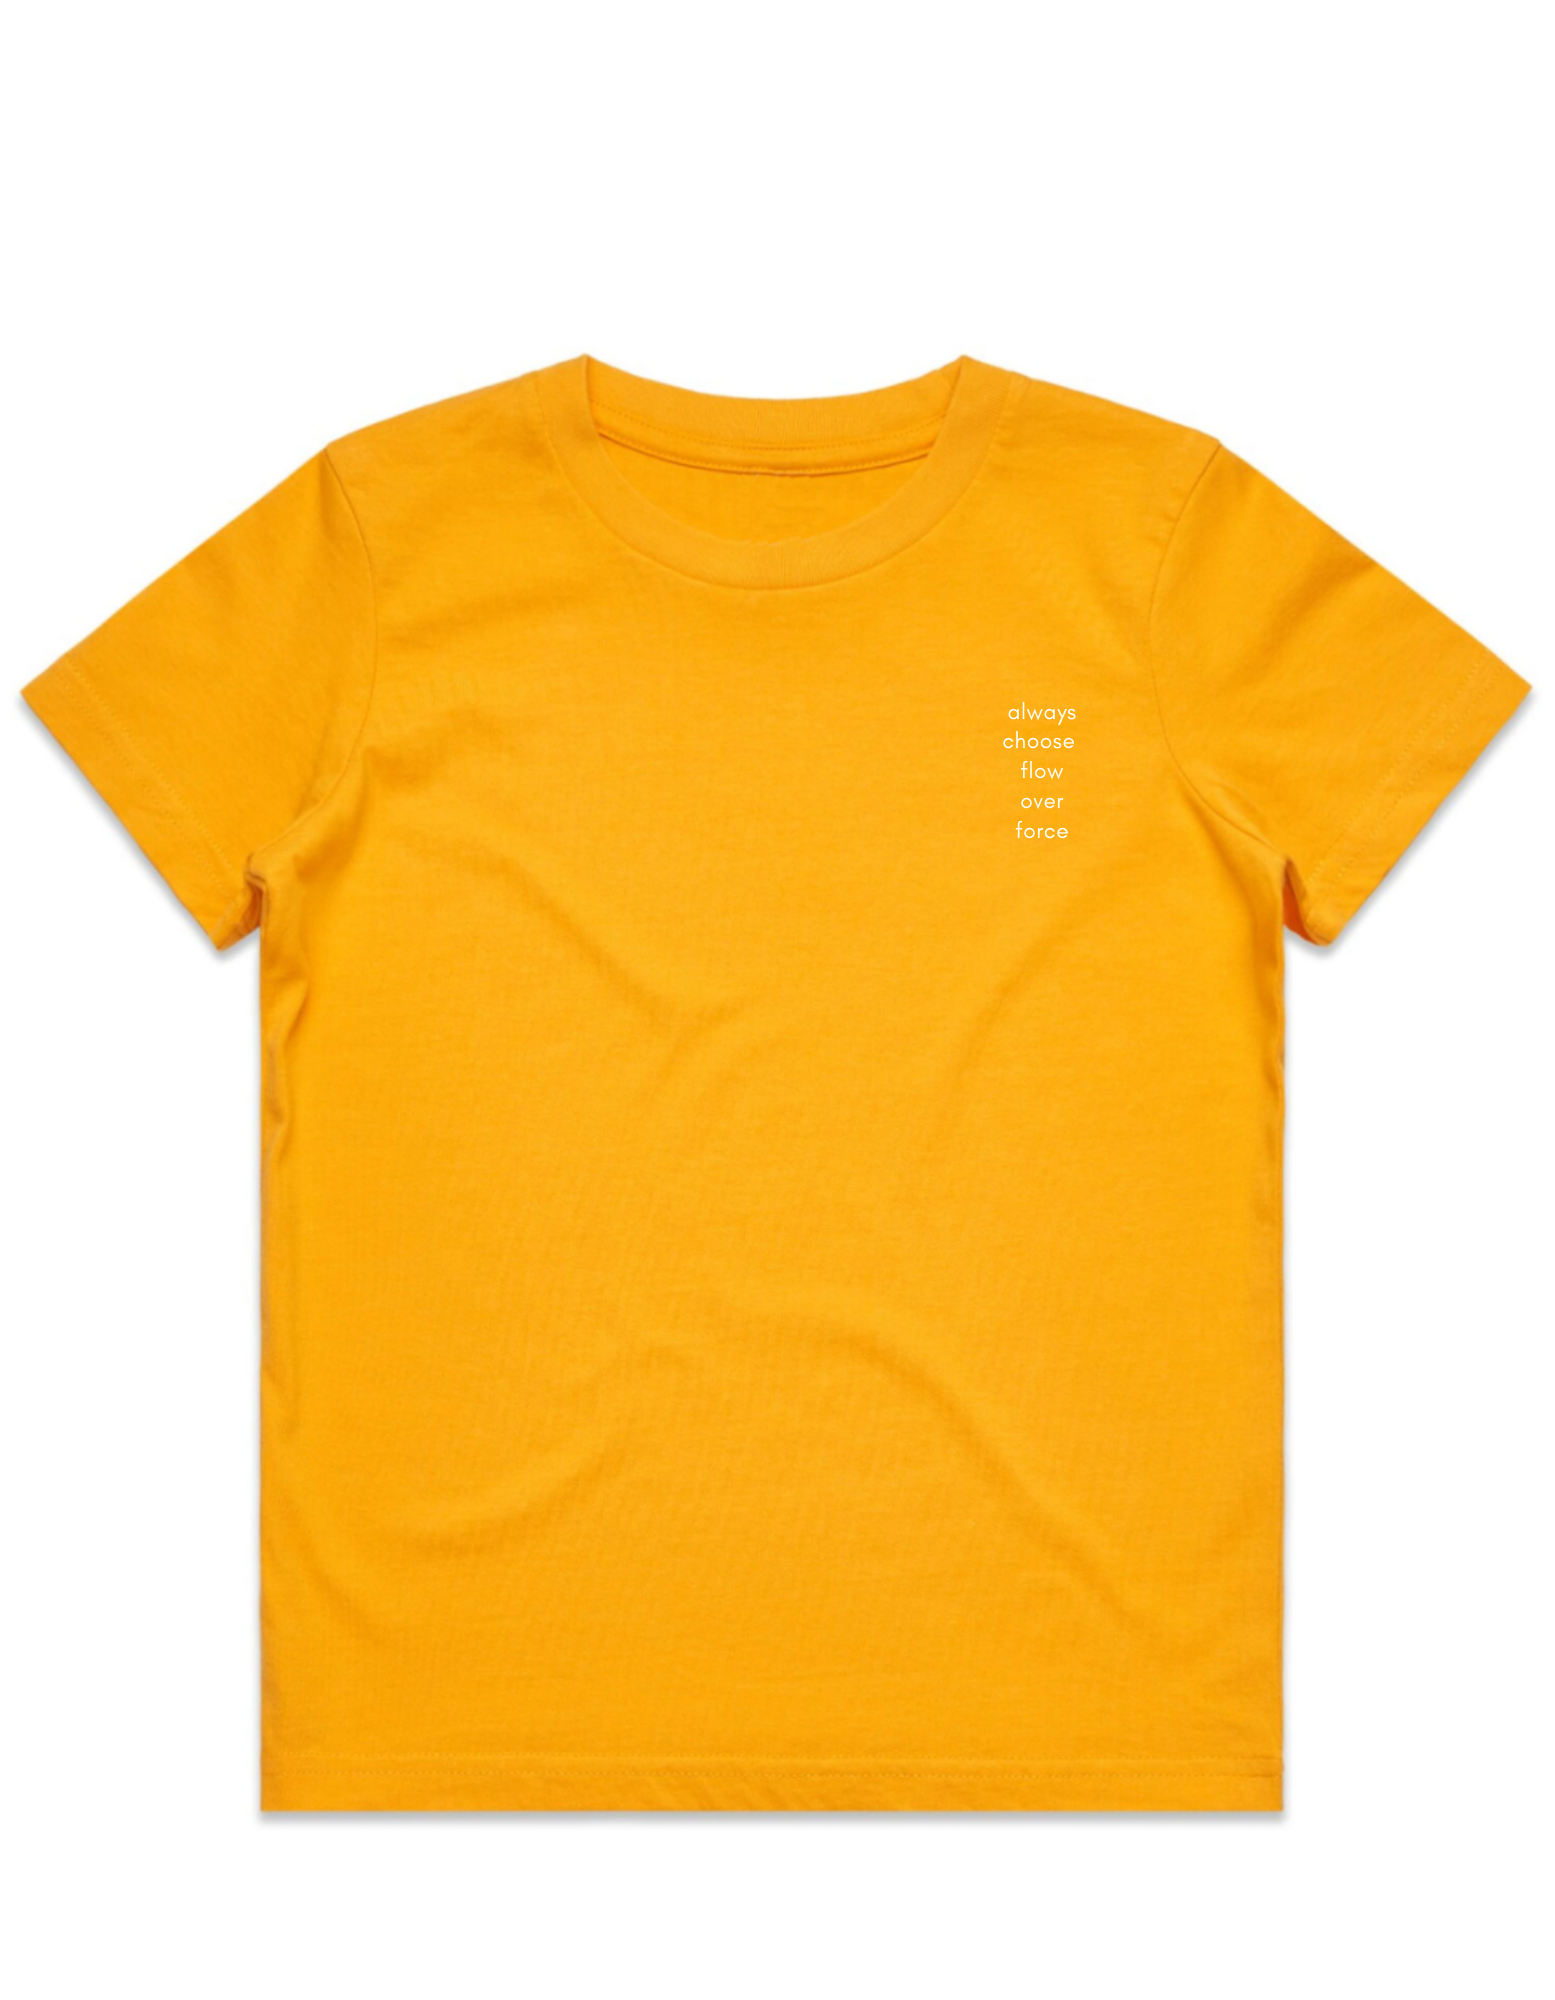 The Kids Conscious Tee